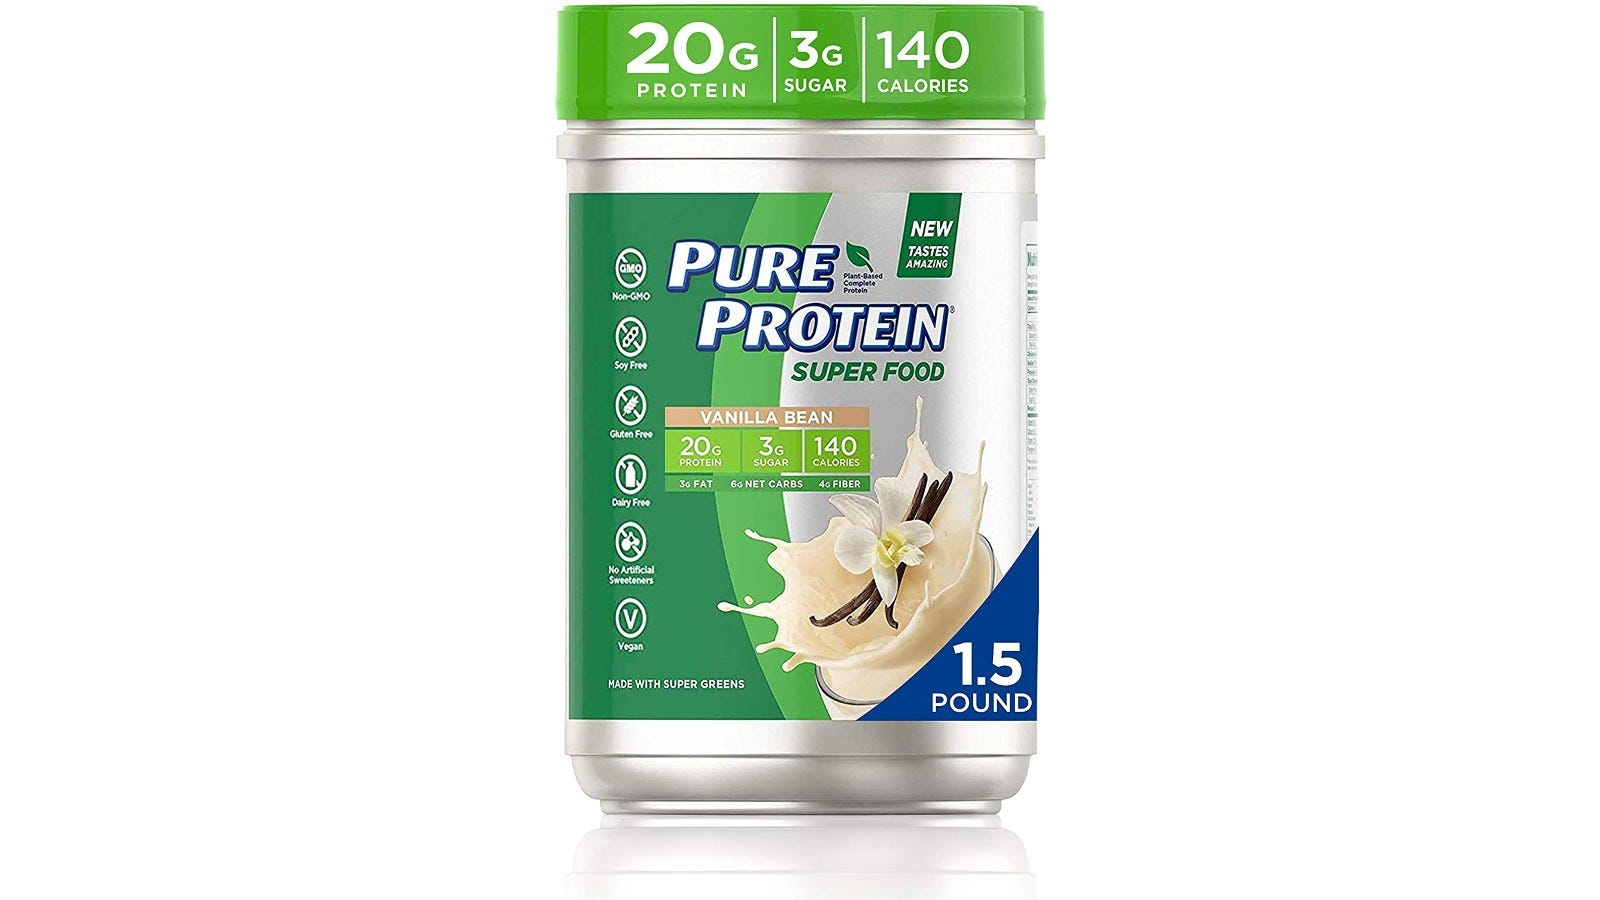 1.5-pound container of Pure Protein superfood powder with 20 grams of pure protein